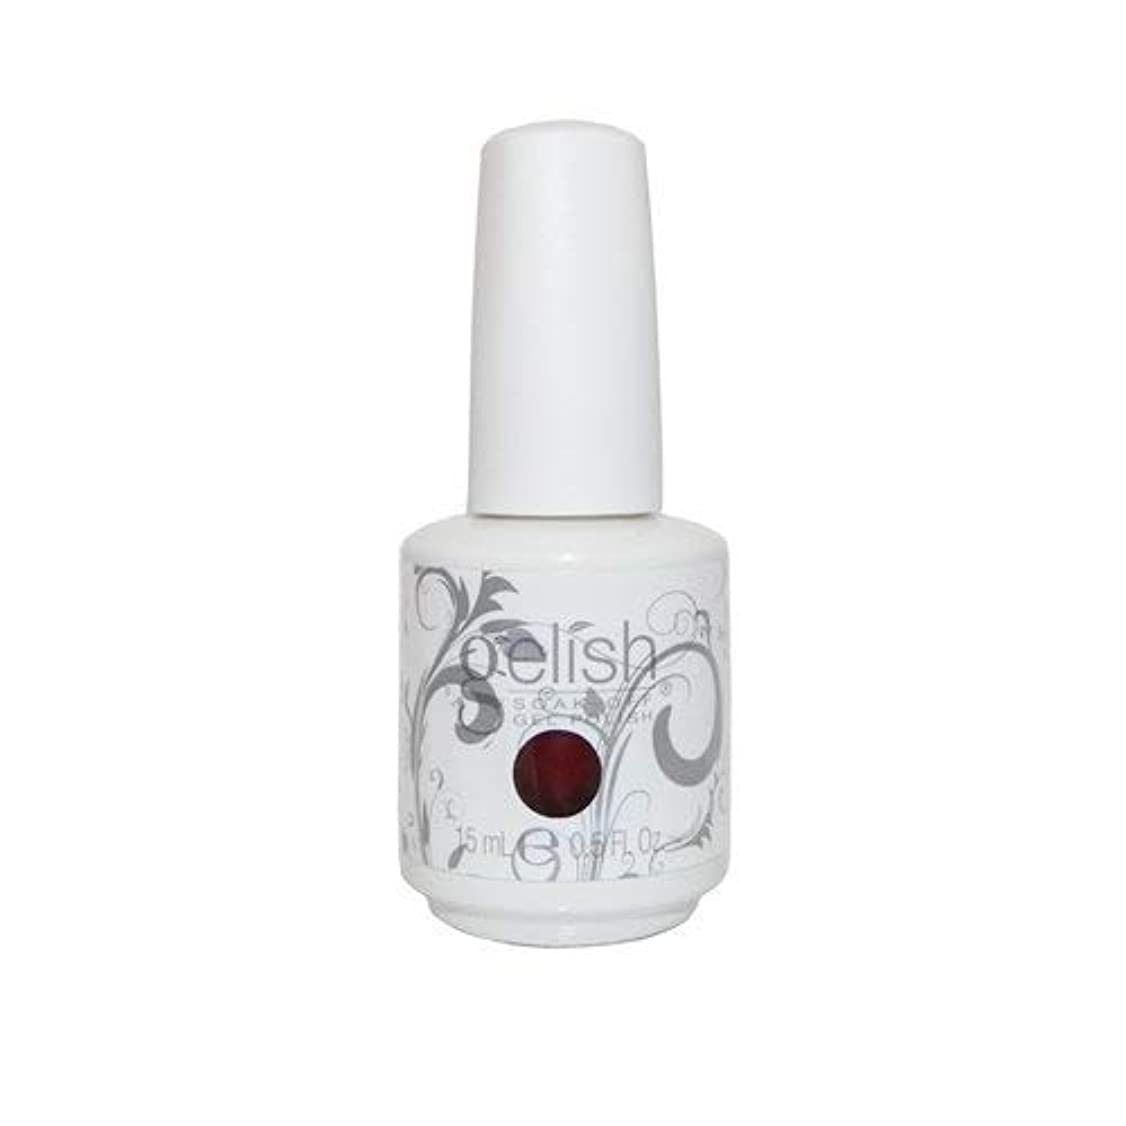 アクセスできない比喩壊すHarmony Gelish Gel Polish - What's Your Poinsettia? - 0.5oz / 15ml